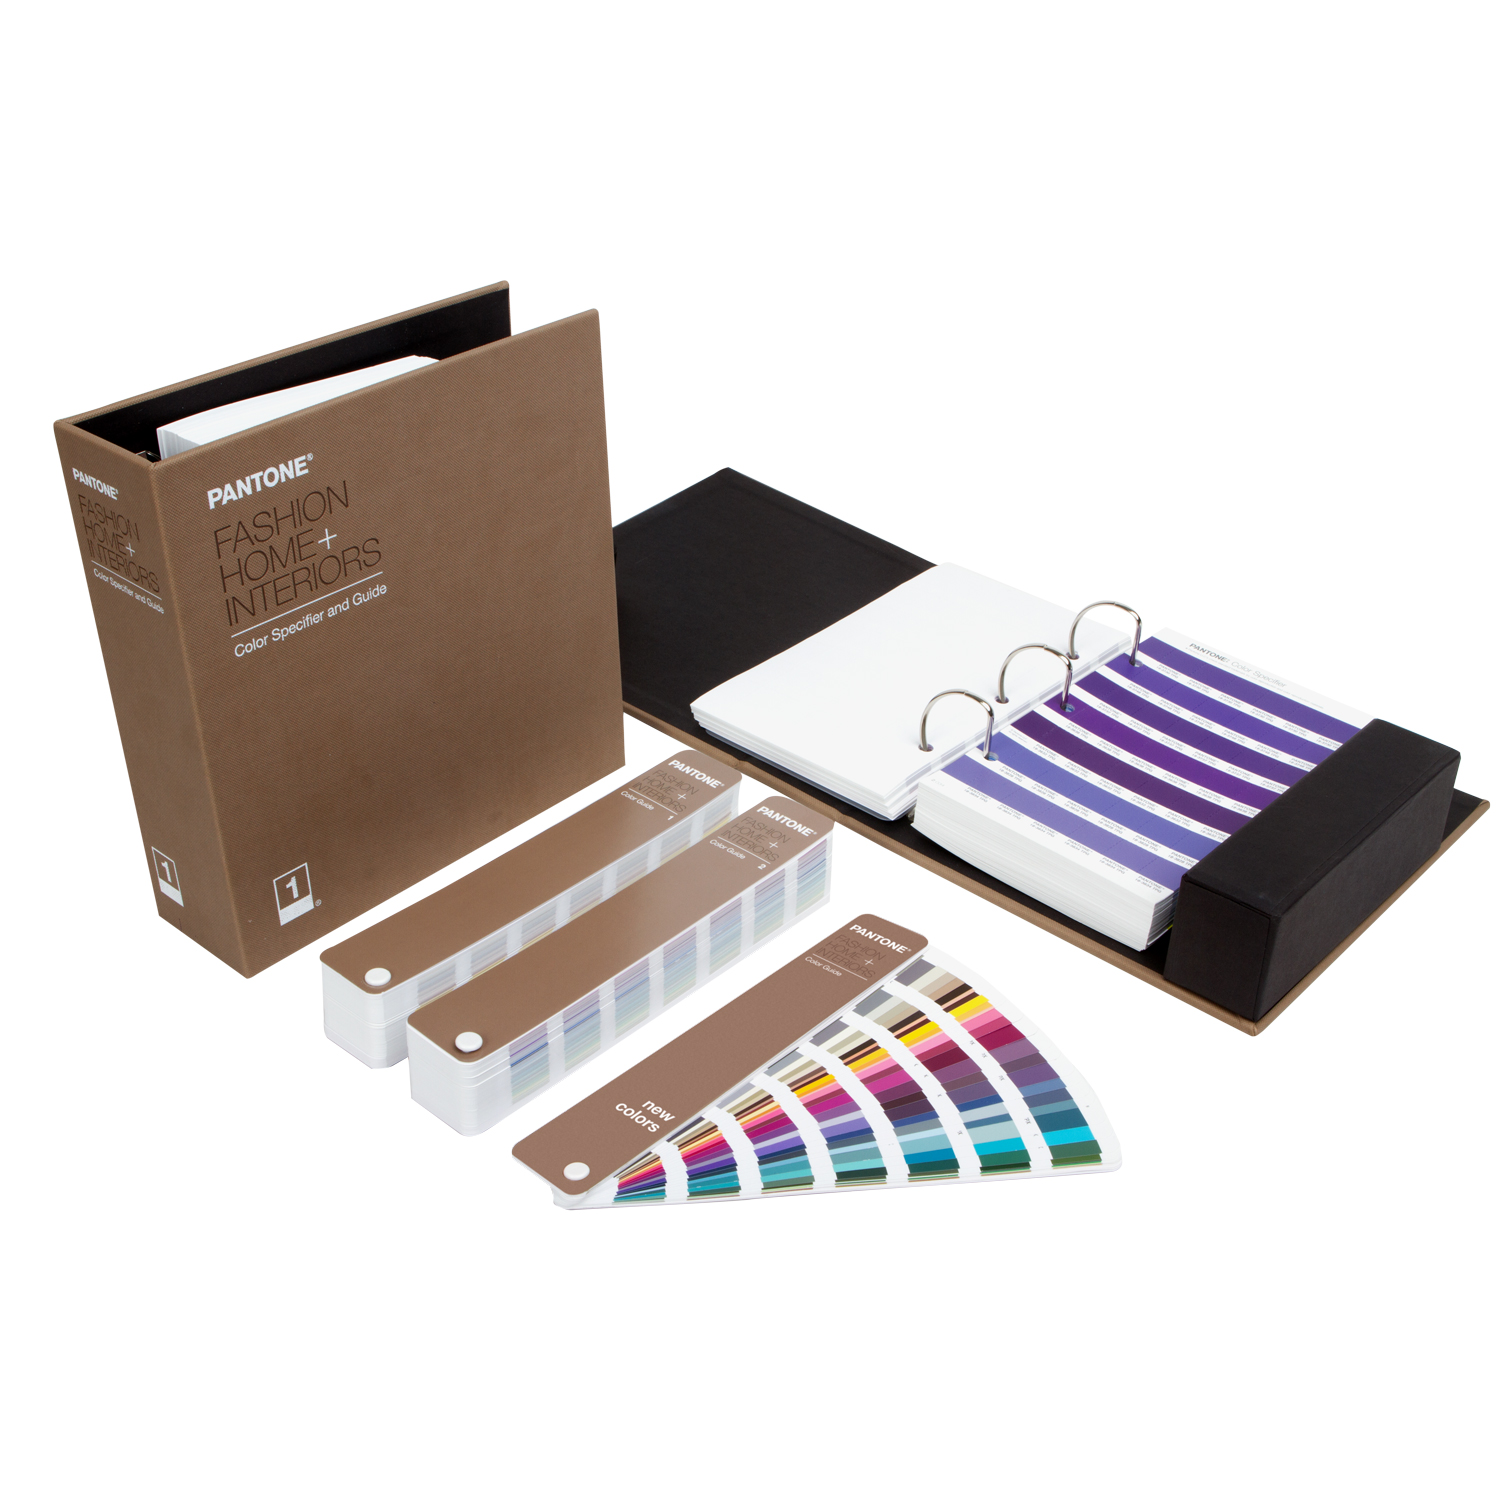 Buy Pantone Fashion Home Selectors Pantone Textile Books and Guides